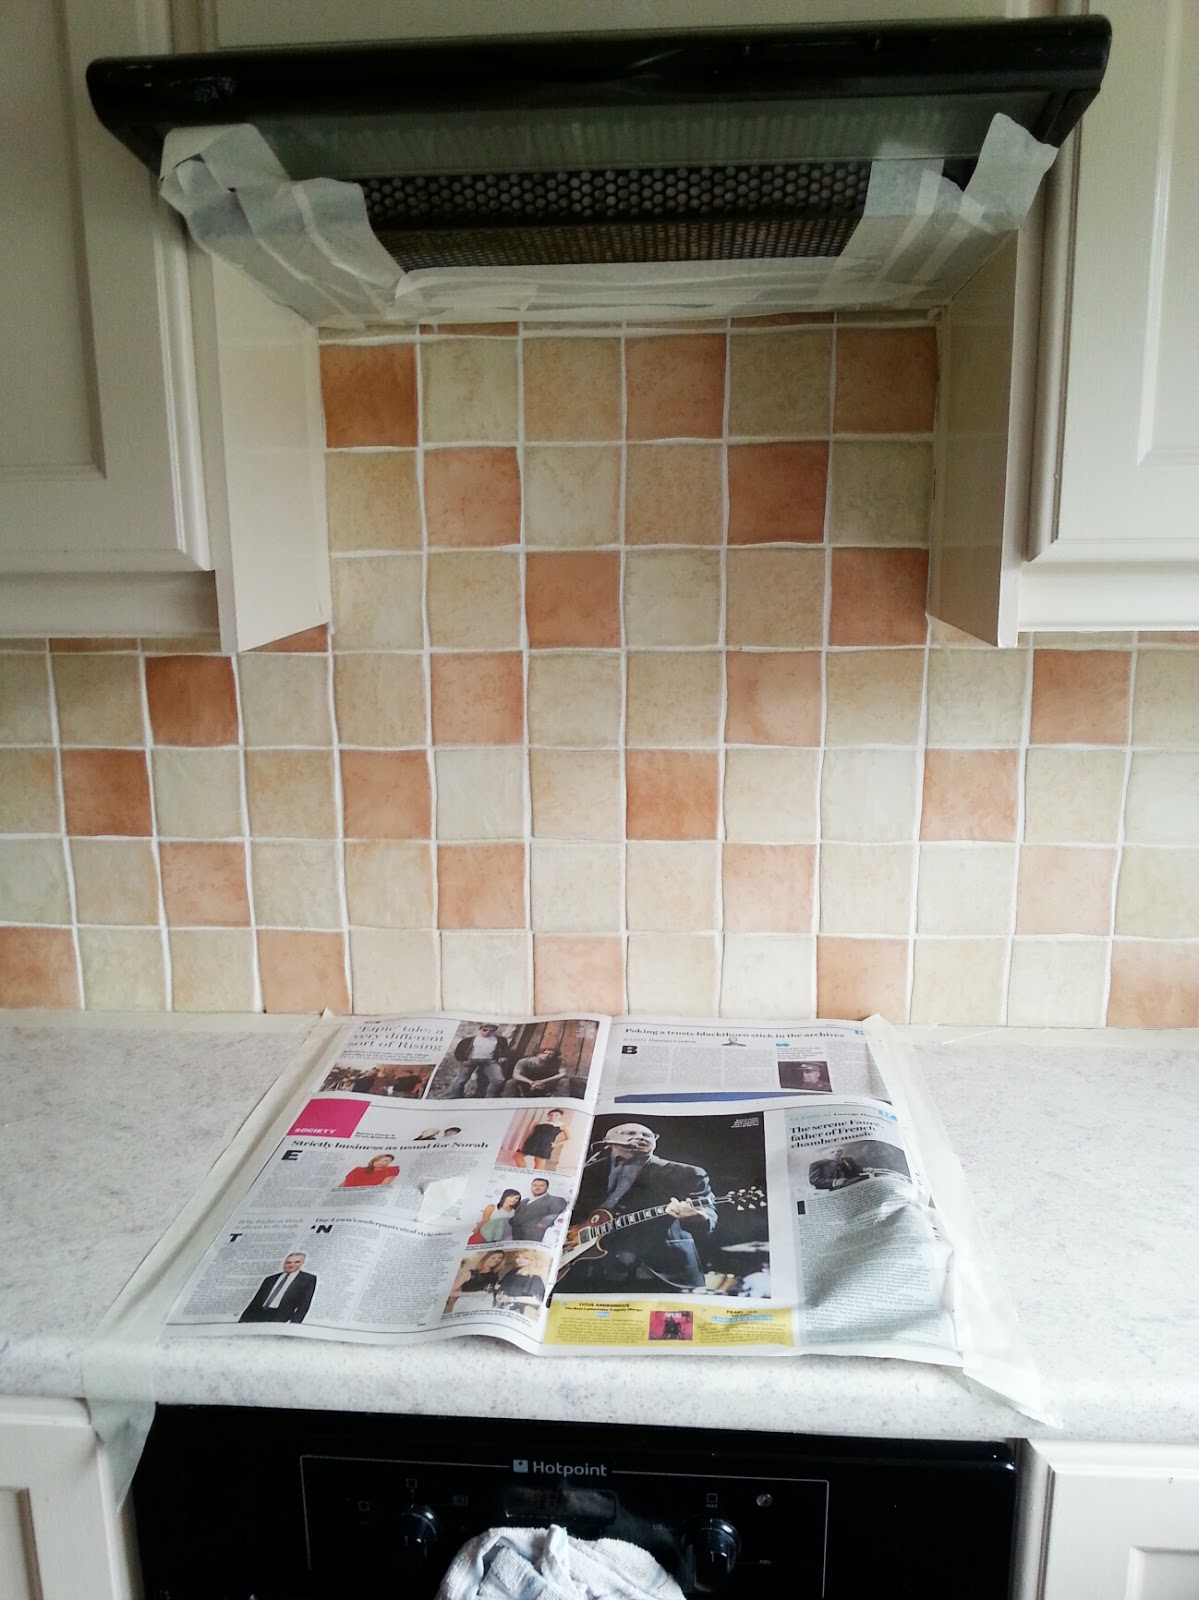 Painted tile backsplash cover those ugly tiles make do and diy painted kitchen tile backsplash cheap and easy update for dated tile makedoanddiy dailygadgetfo Image collections